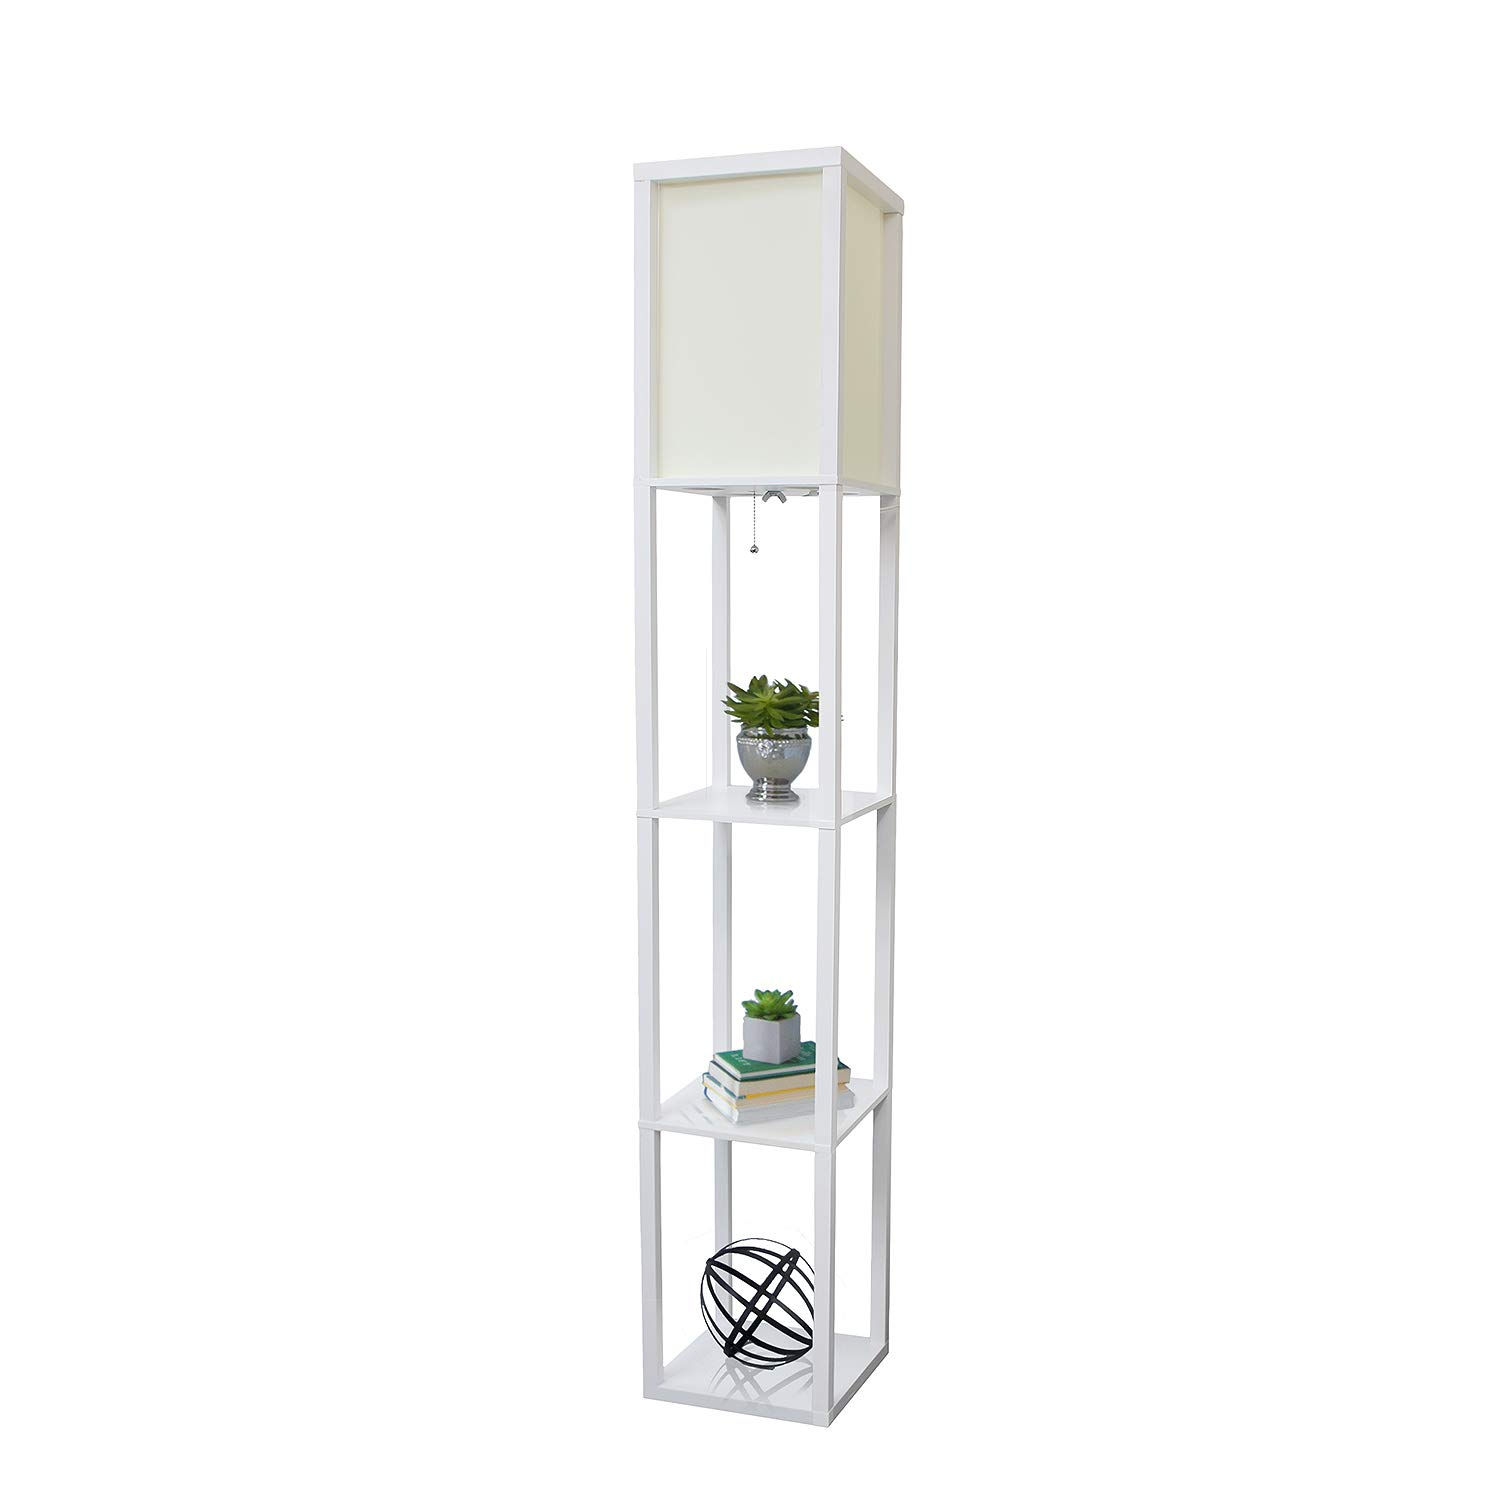 Simple Designs Home LF1014-WHT Etagere Organizer Storage Shelf Floor Lamp with Linen Shade, White